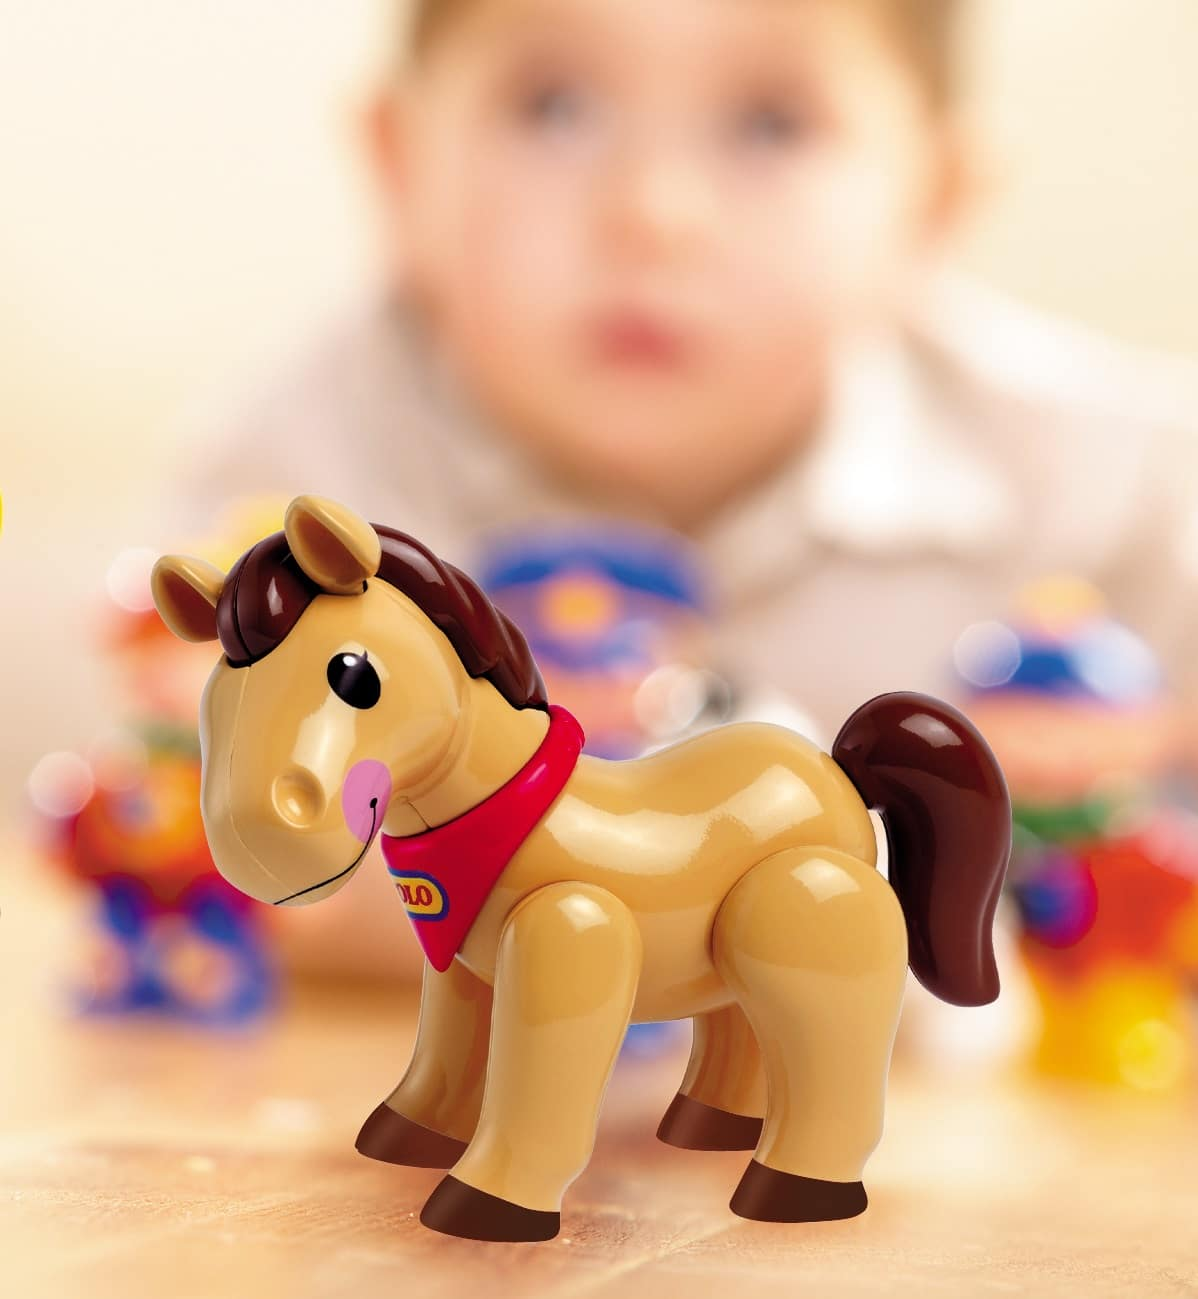 brown pony articulated play figure